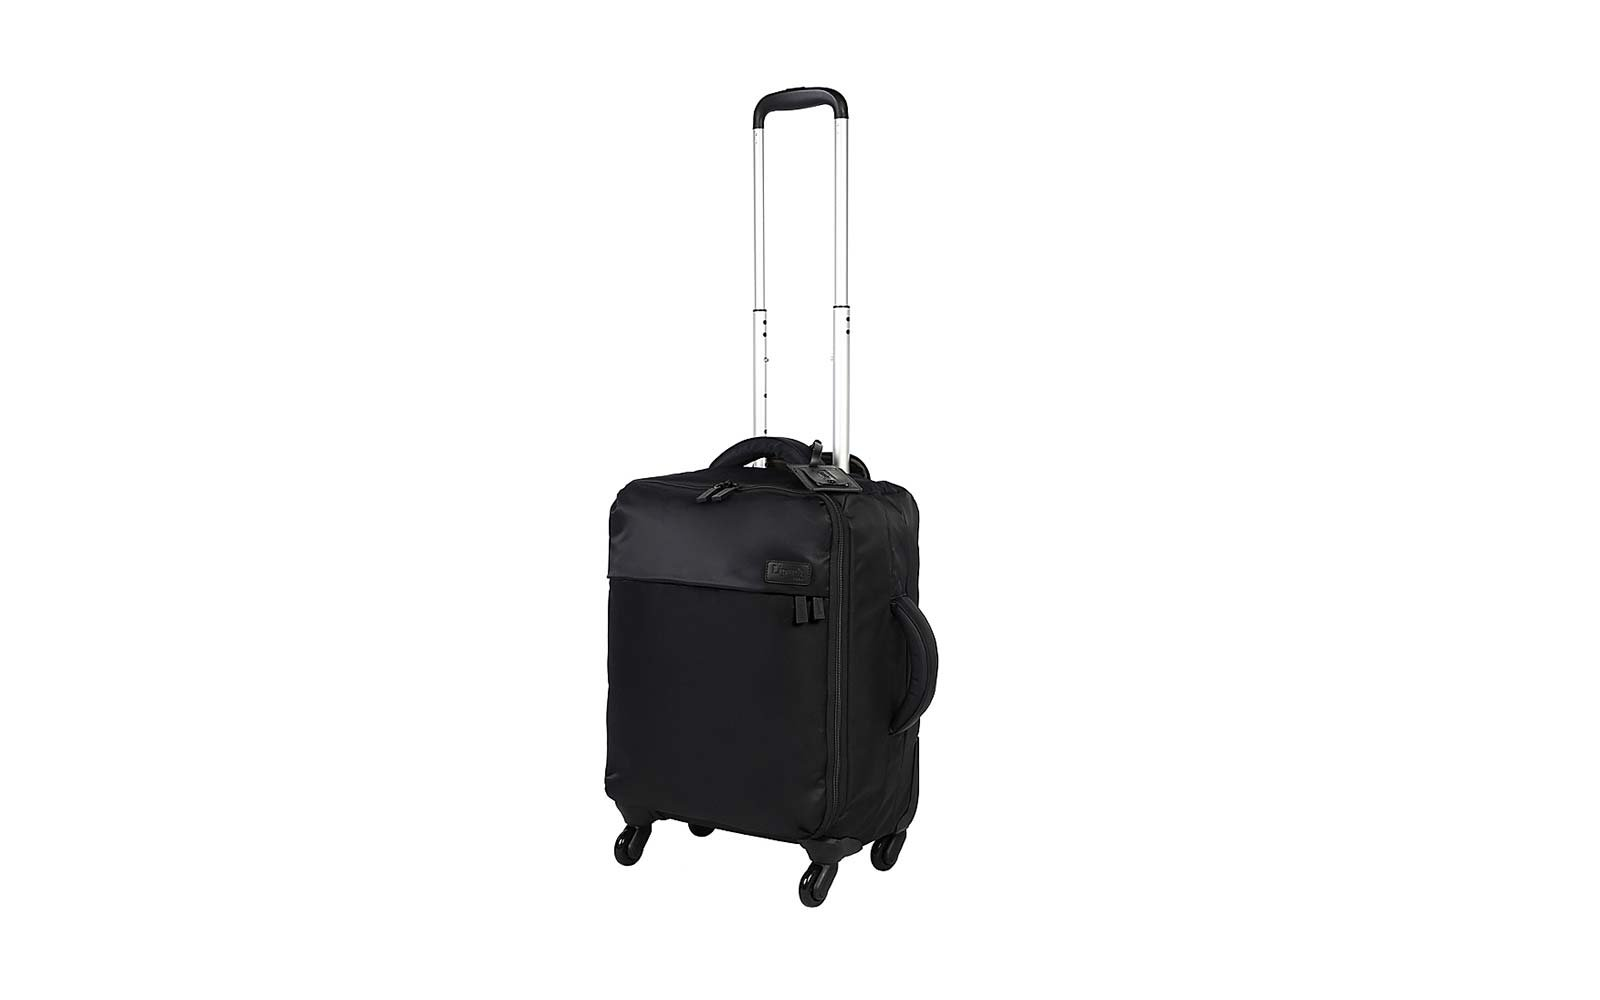 lipault travel bag luggage